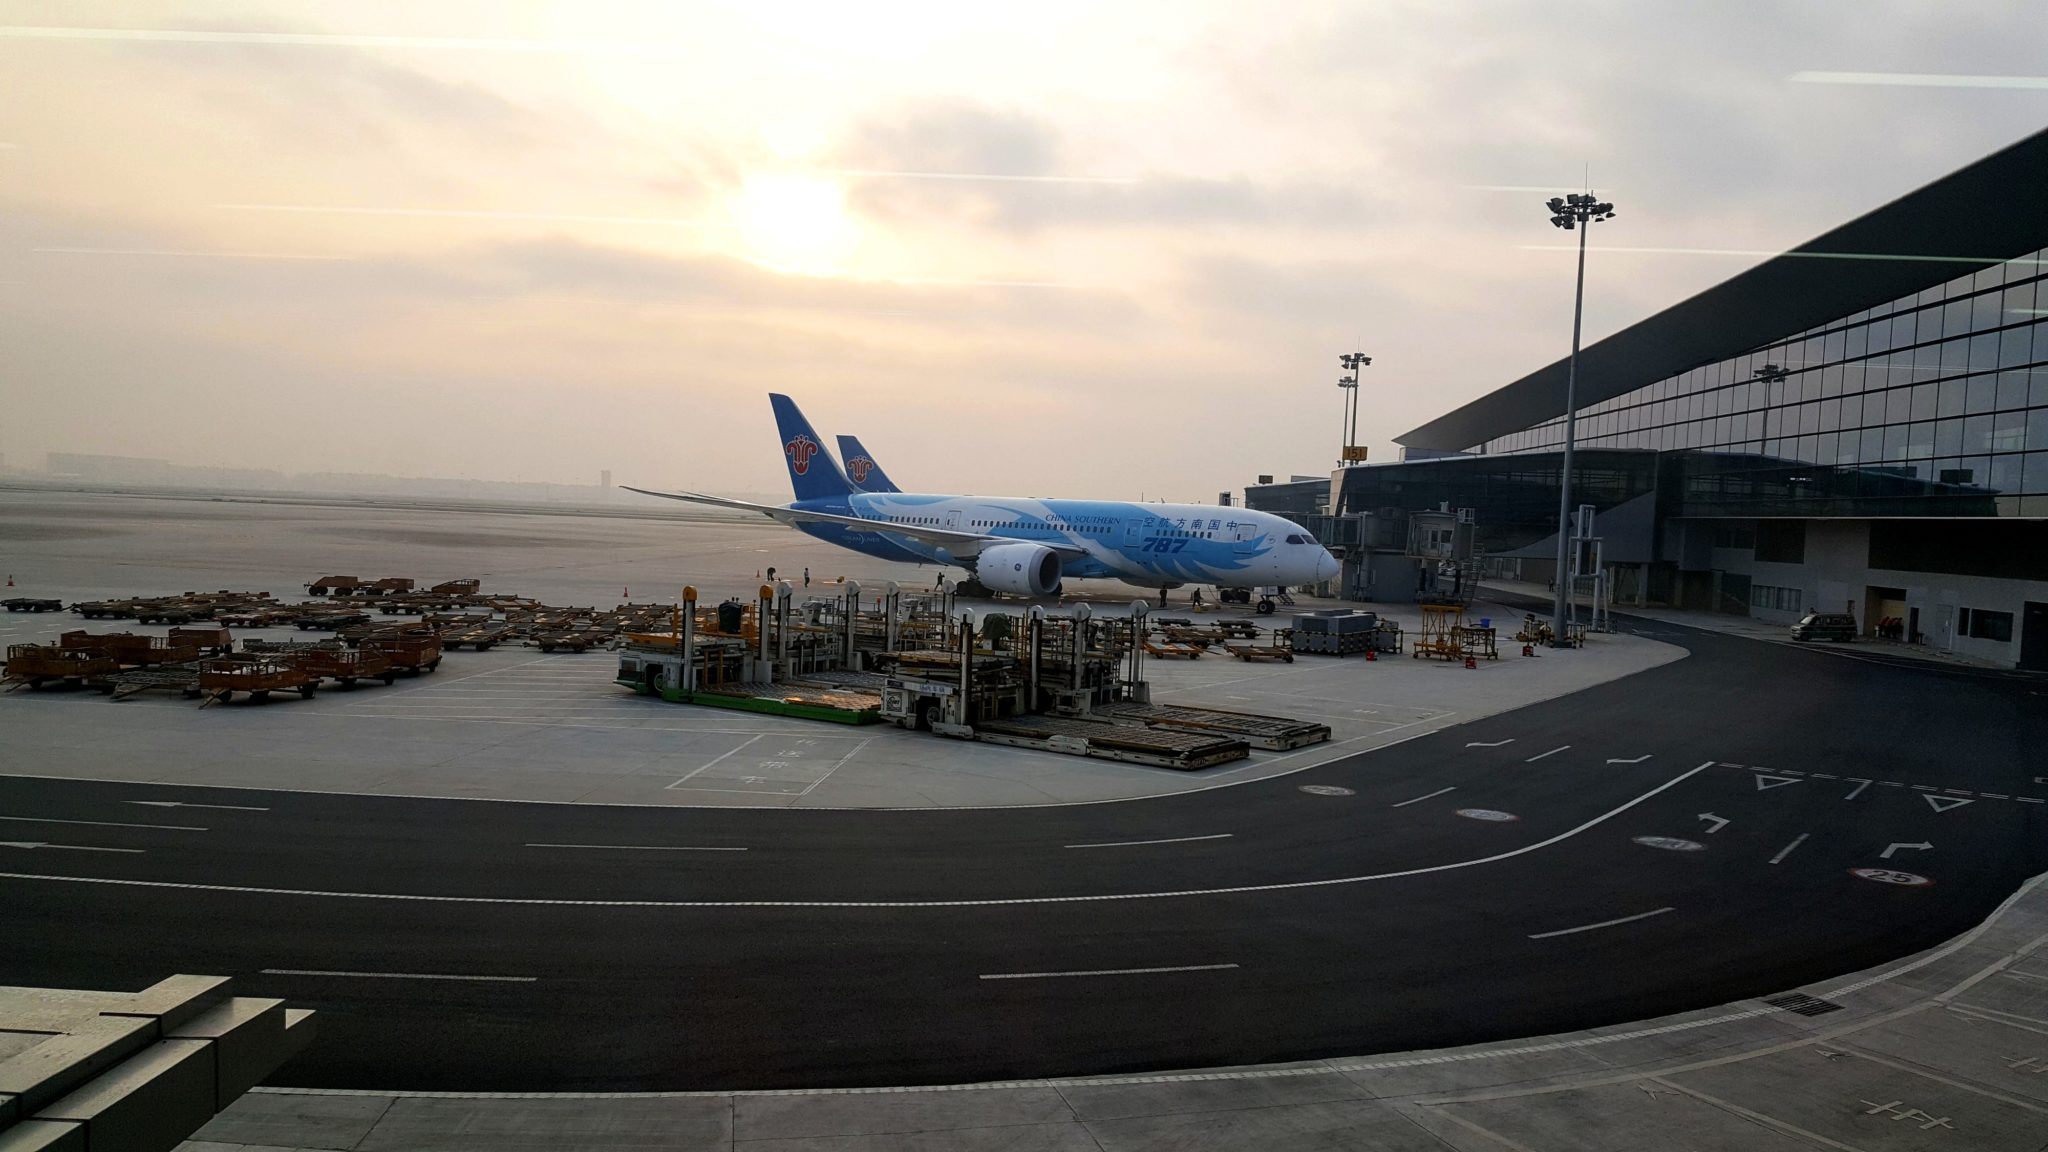 Baiyun International Airport in Guangzhou, China. I travelled through the airport in March and May.